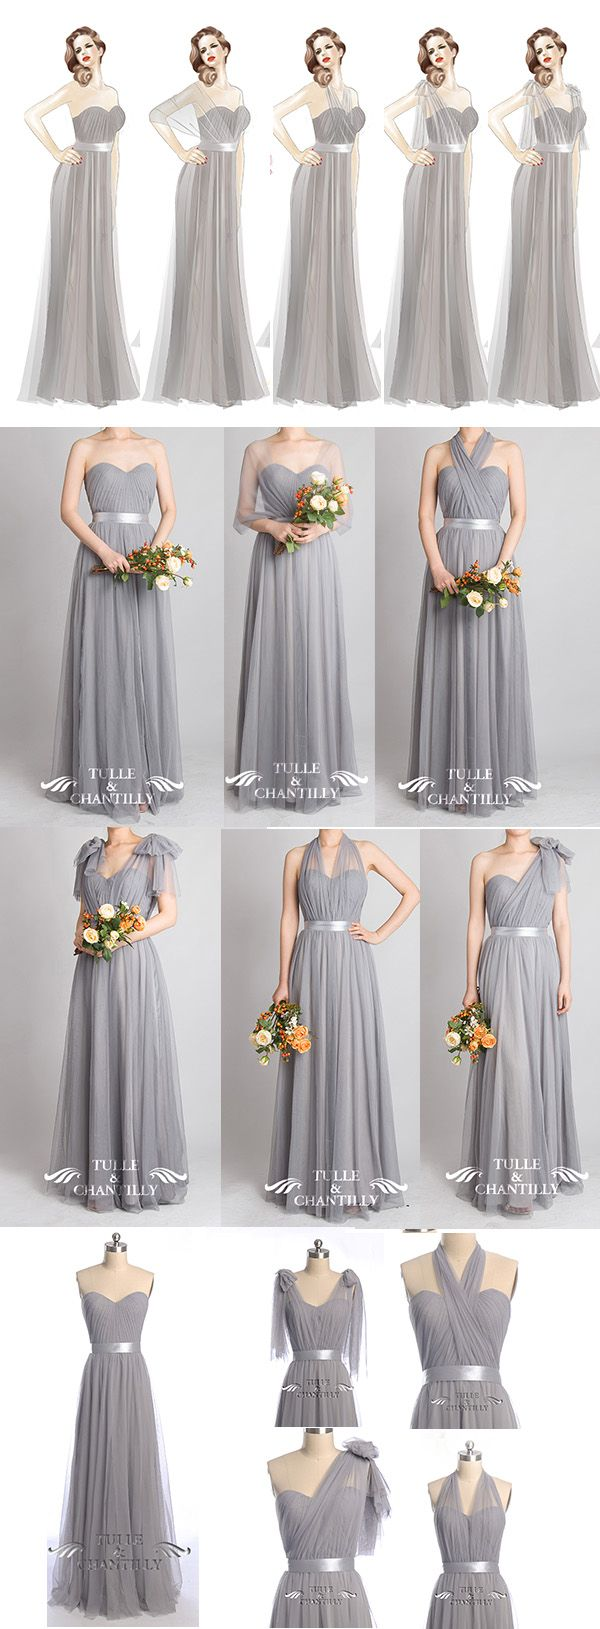 Grey wedding color ideas - Tulle Convertible Medium Grey Multi-wear Convertible Bridesmaid Dresses